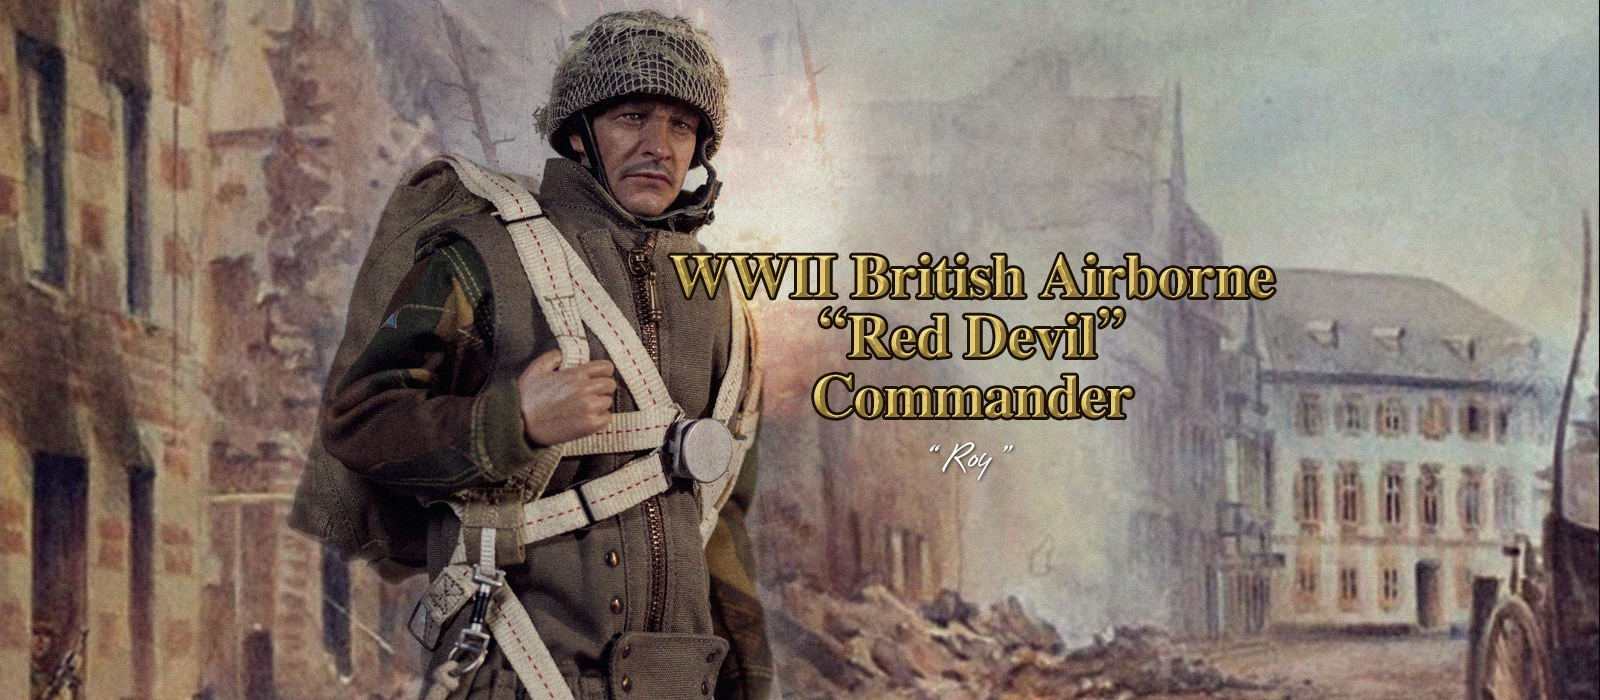 Airborne Red Devil Commander Roy banner 2.jpg